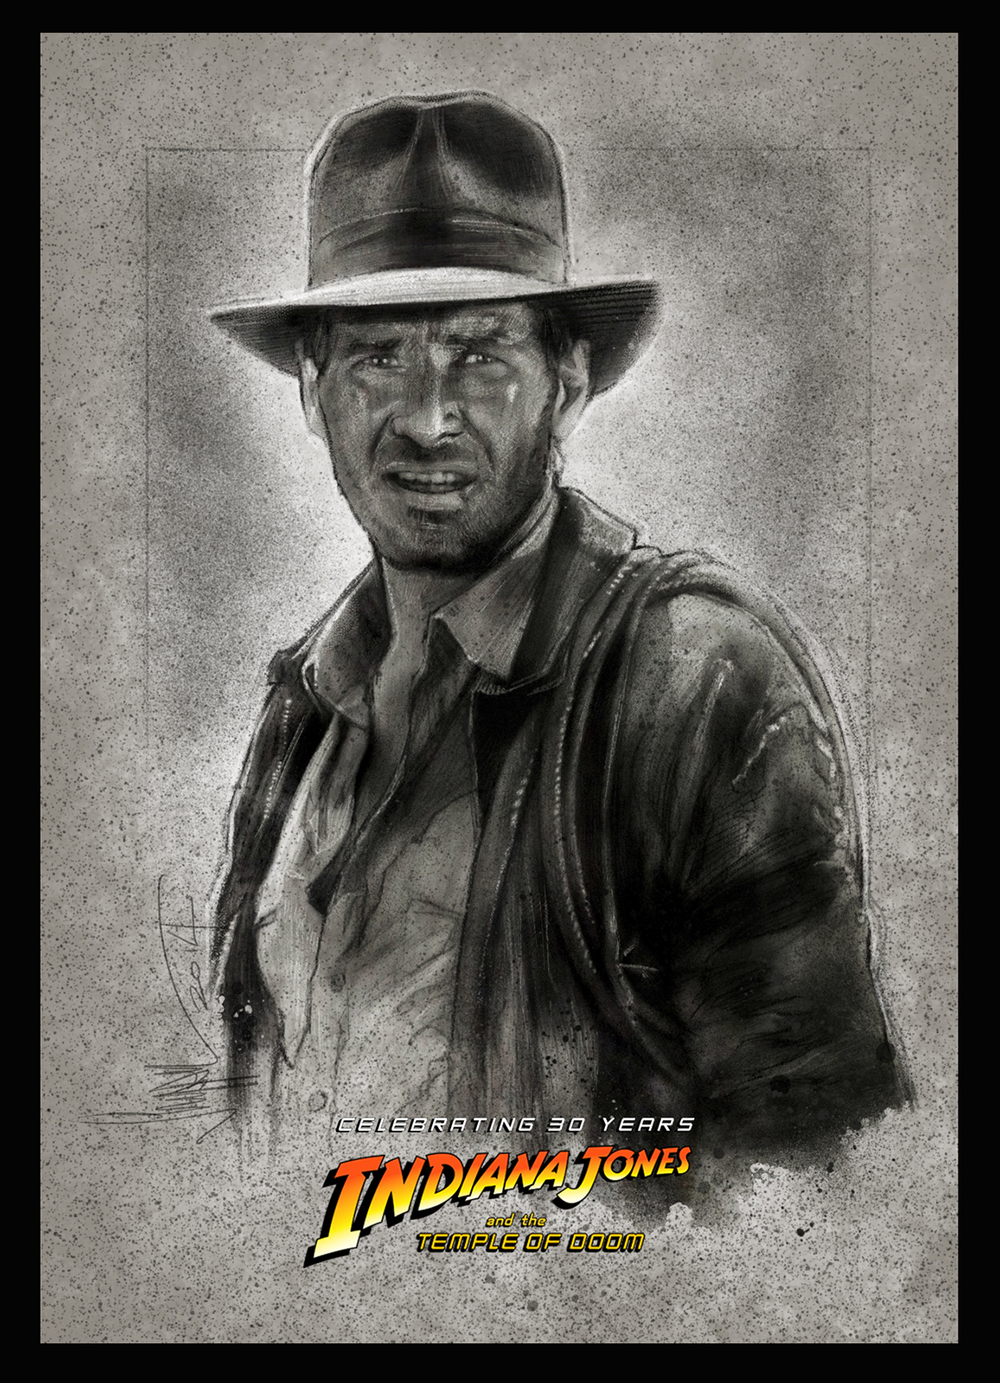 Indiana Jones and the Temple of Doom 30th